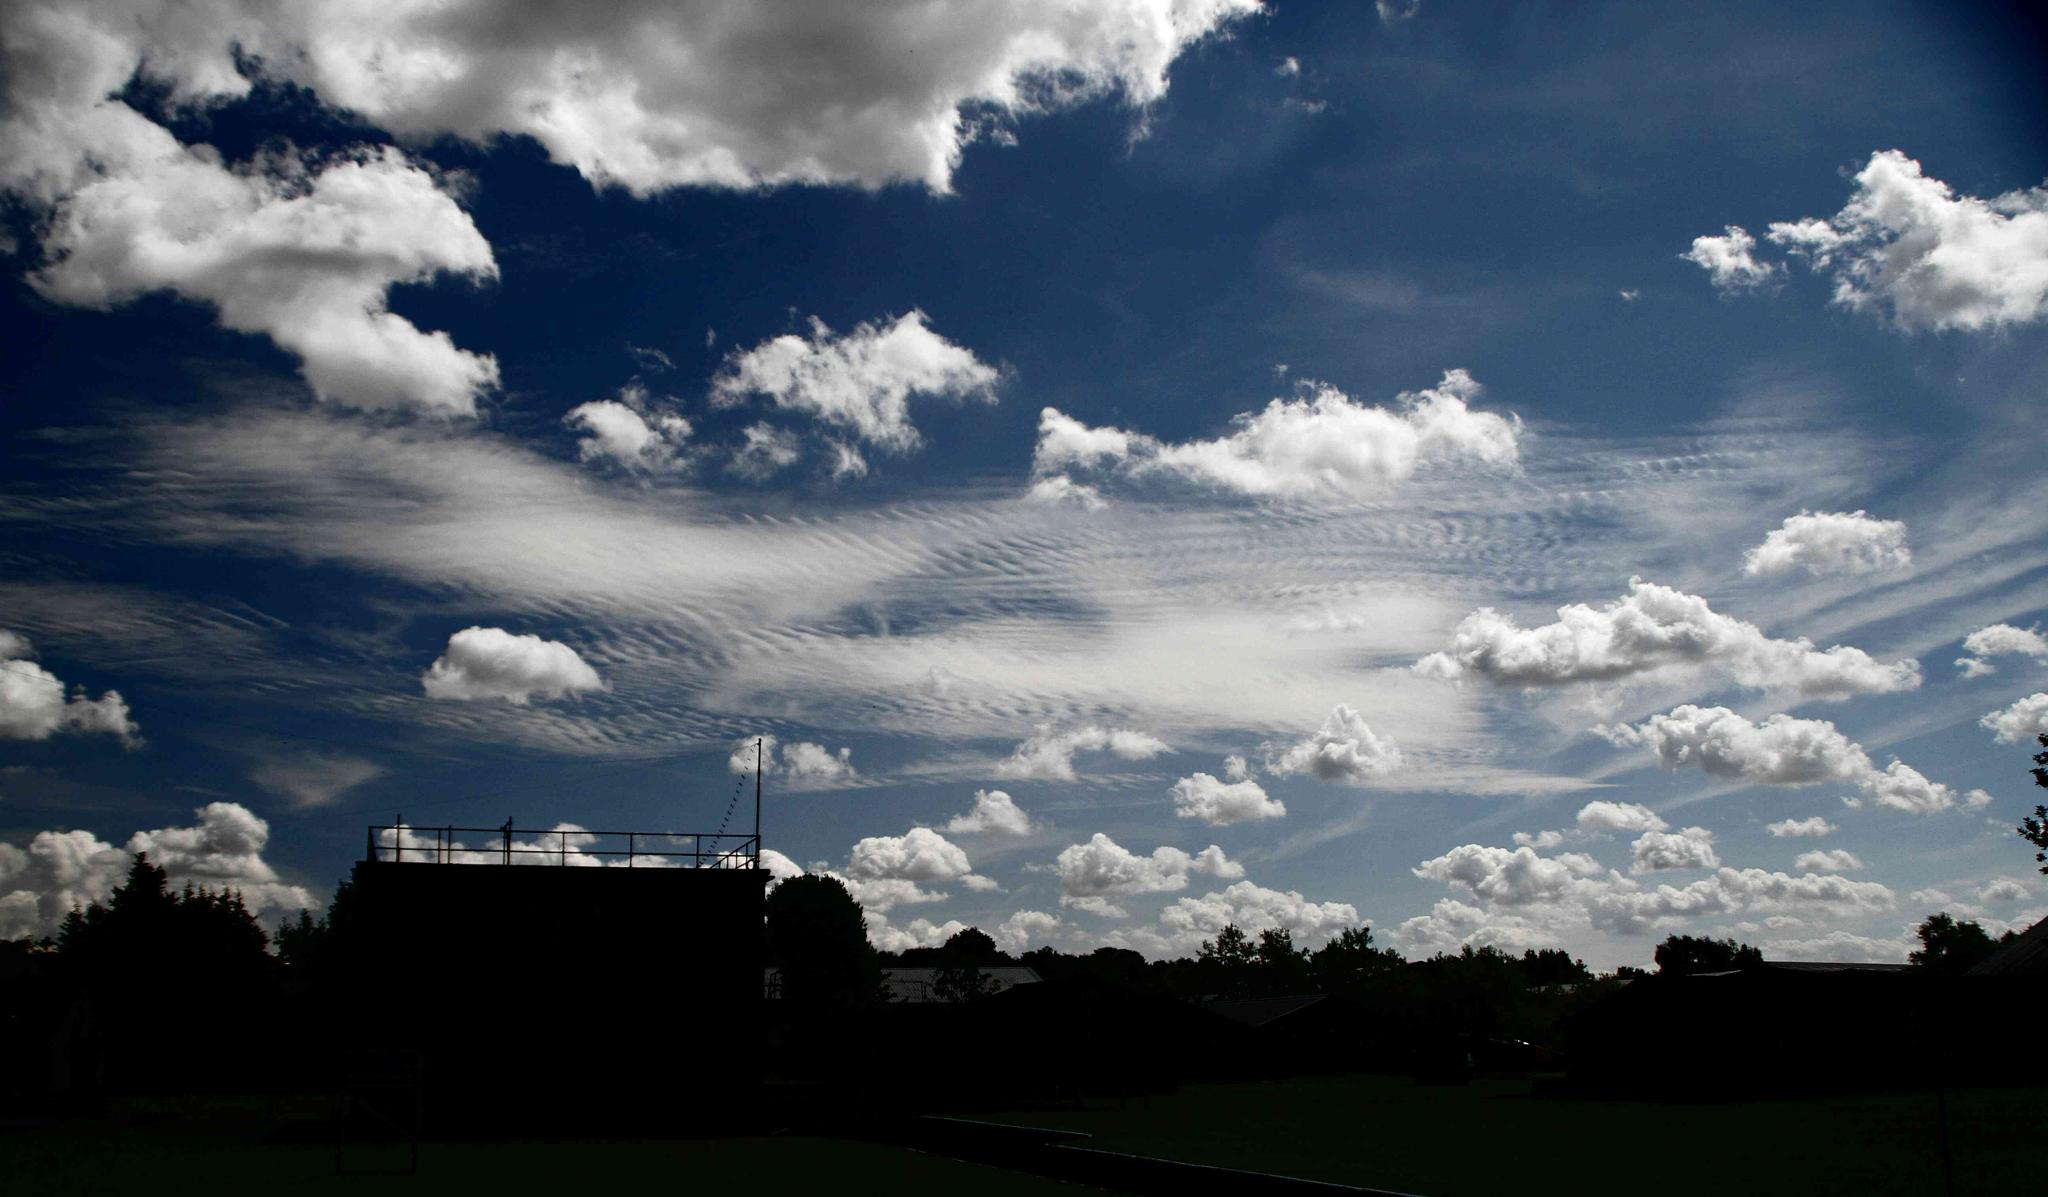 362 Clouds by Steve Walsh ( Laird of Dunans )